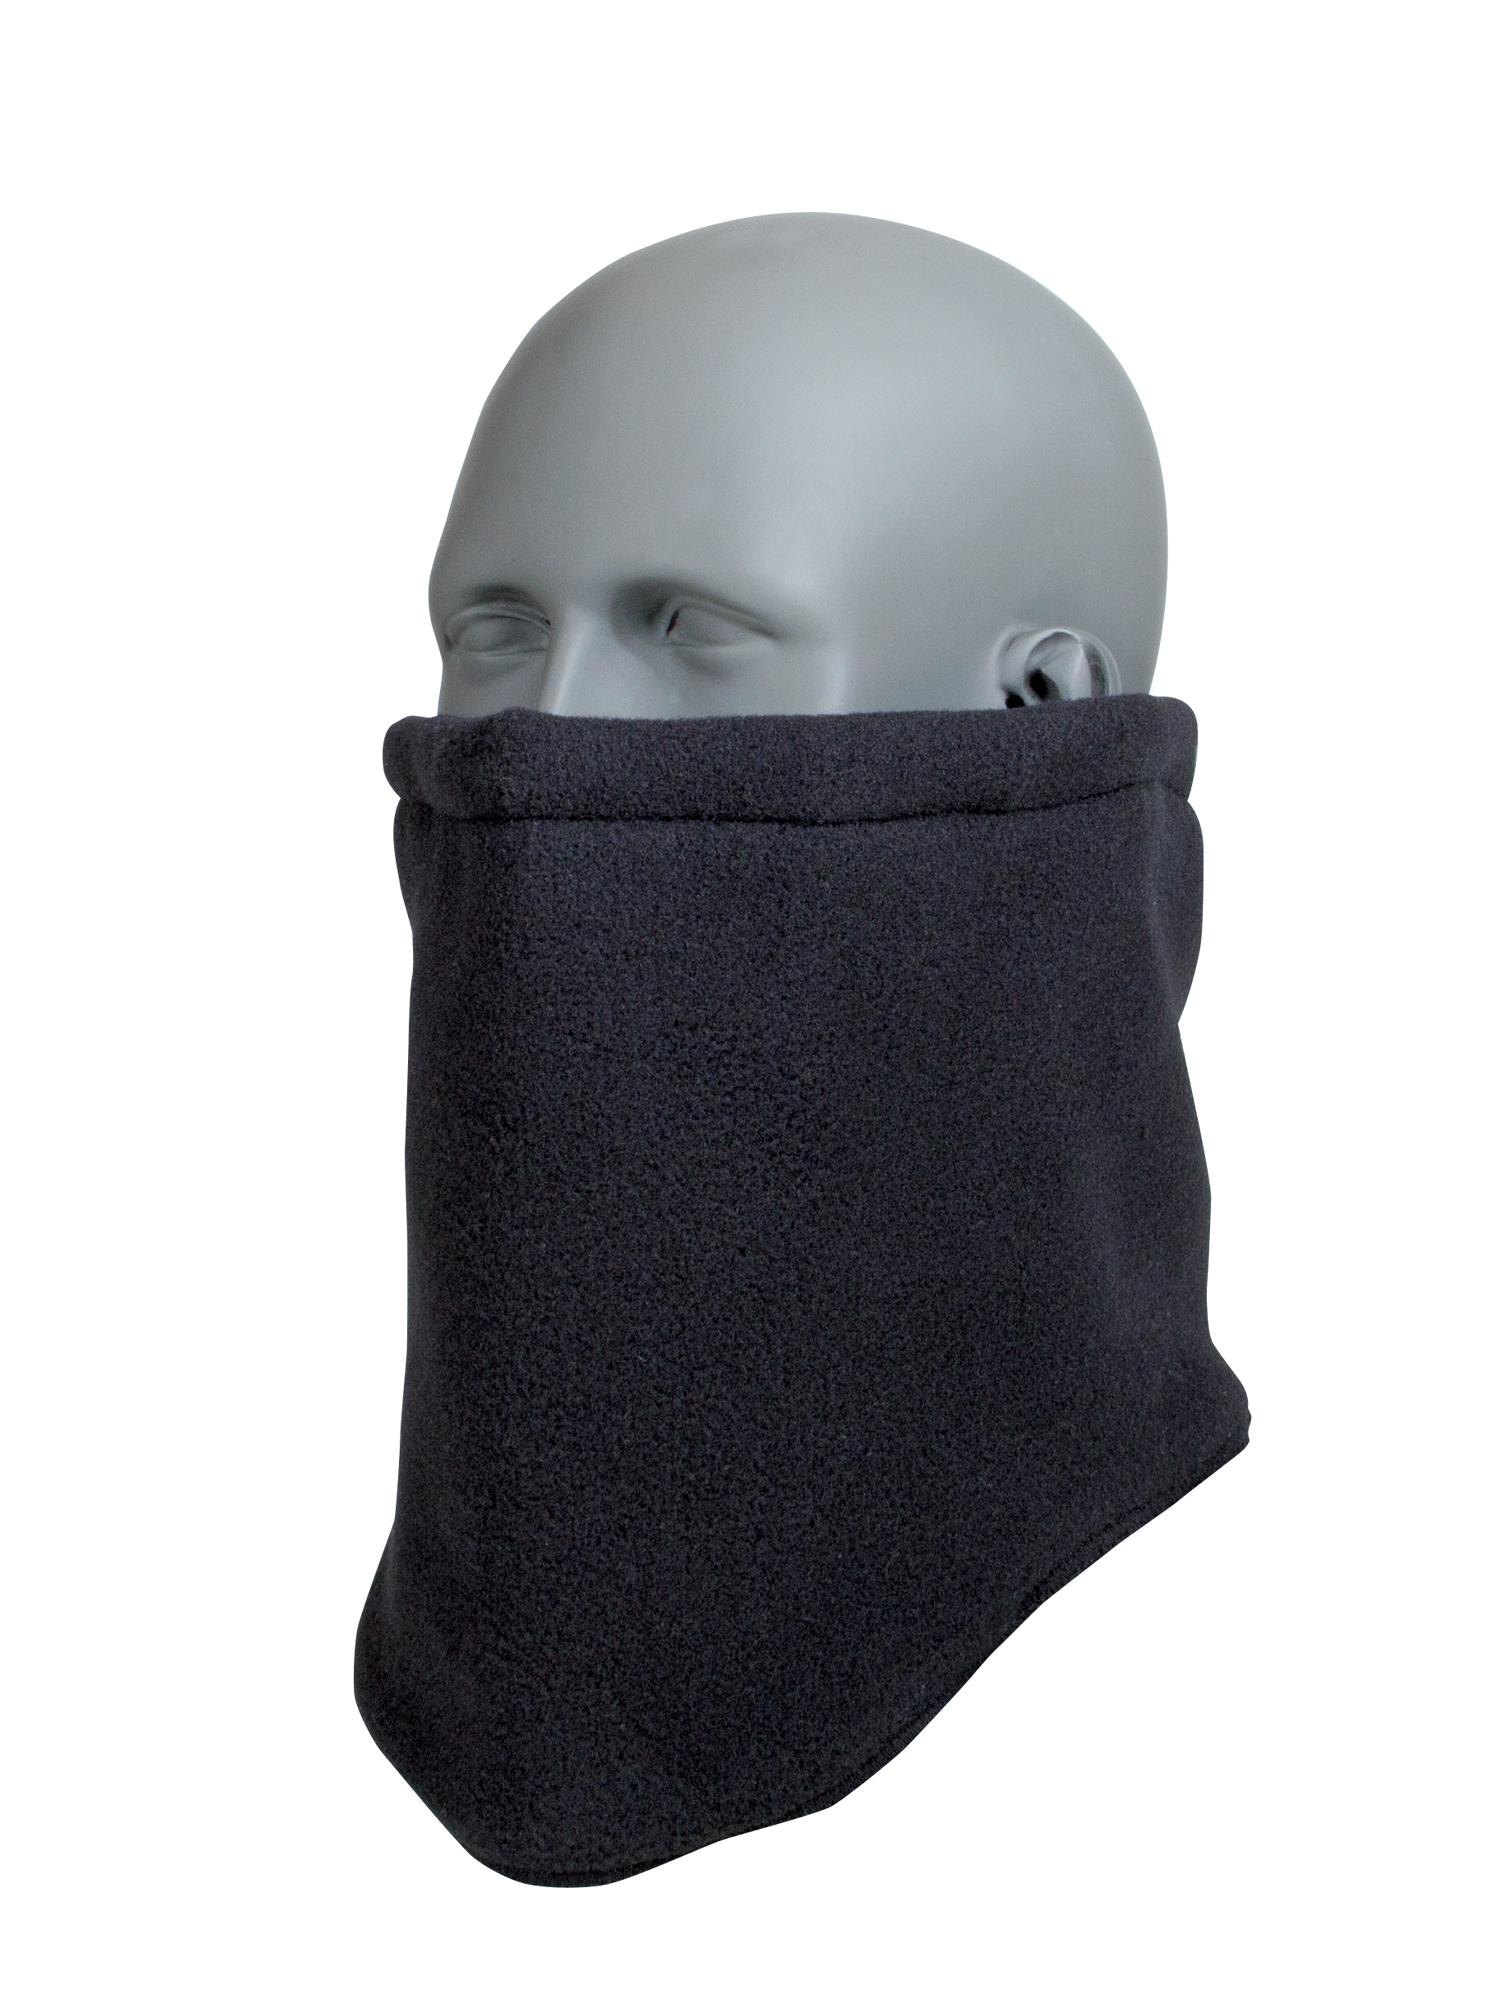 RefrigiWear Double Layer Thick Fleece Neck Gaiter with Adjustable Drawcord Black